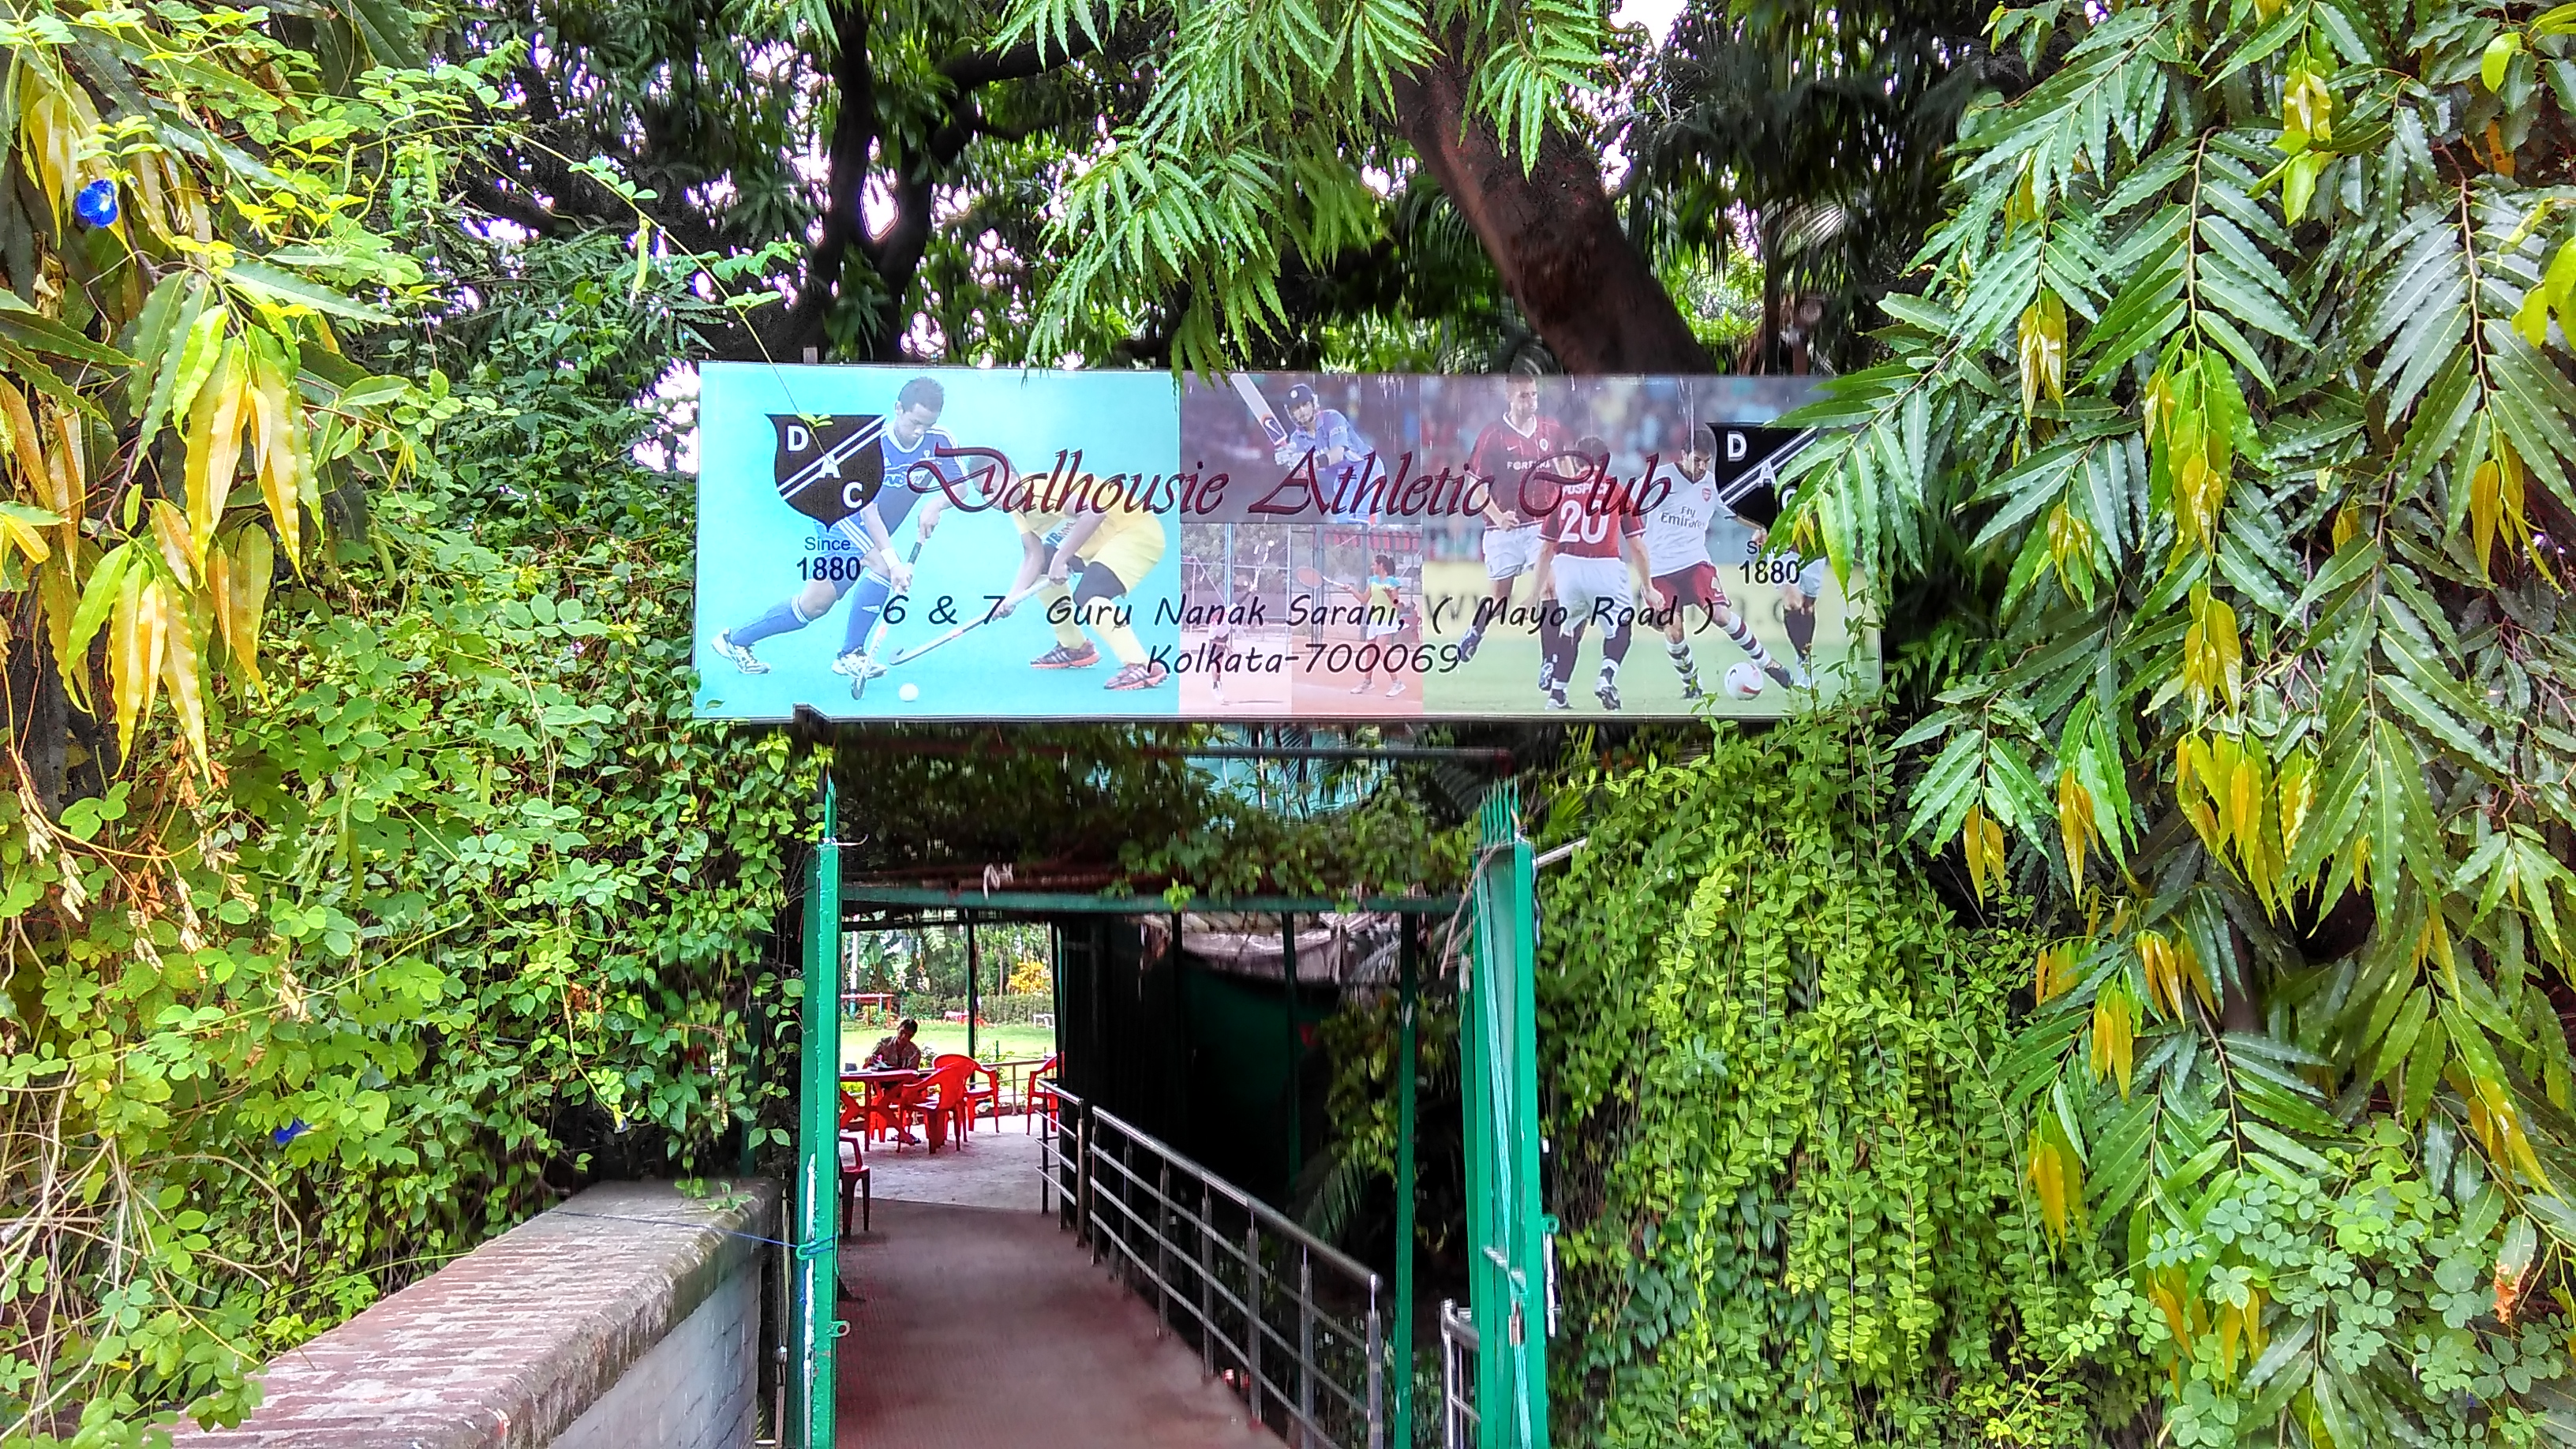 Dalhousie Athletic Club established in 1880. Photo by Abhimanyu Sengupta